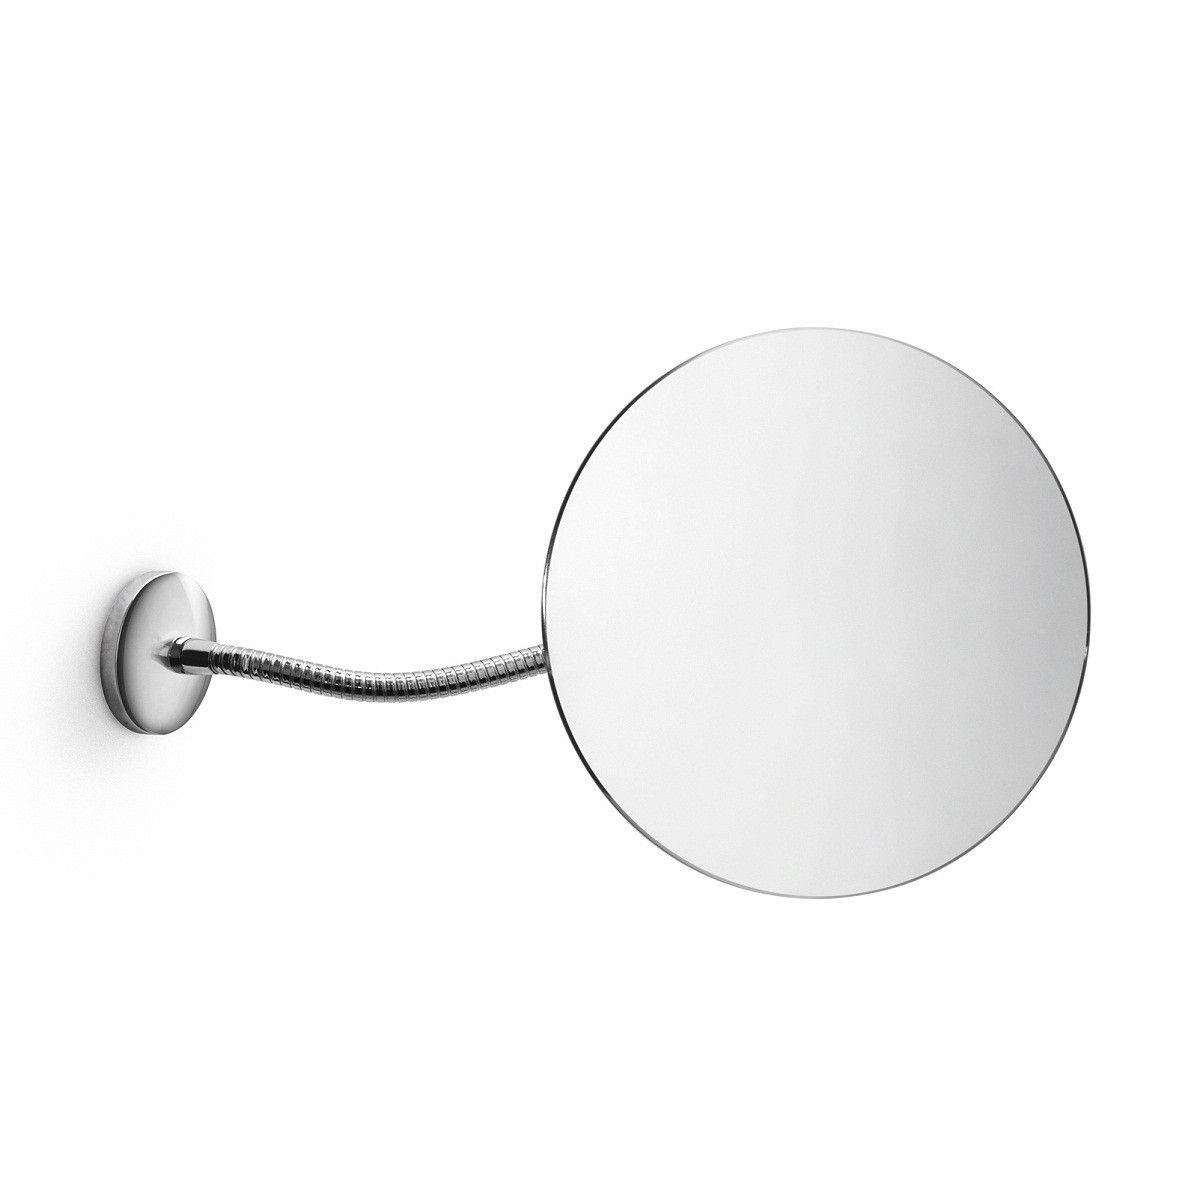 Wall mounted magnifying mirrors for bathrooms - Beautiful High End Modern Stylish Designer Wall Mounted Bathroom Magnifying Mirror With Flexible Arm